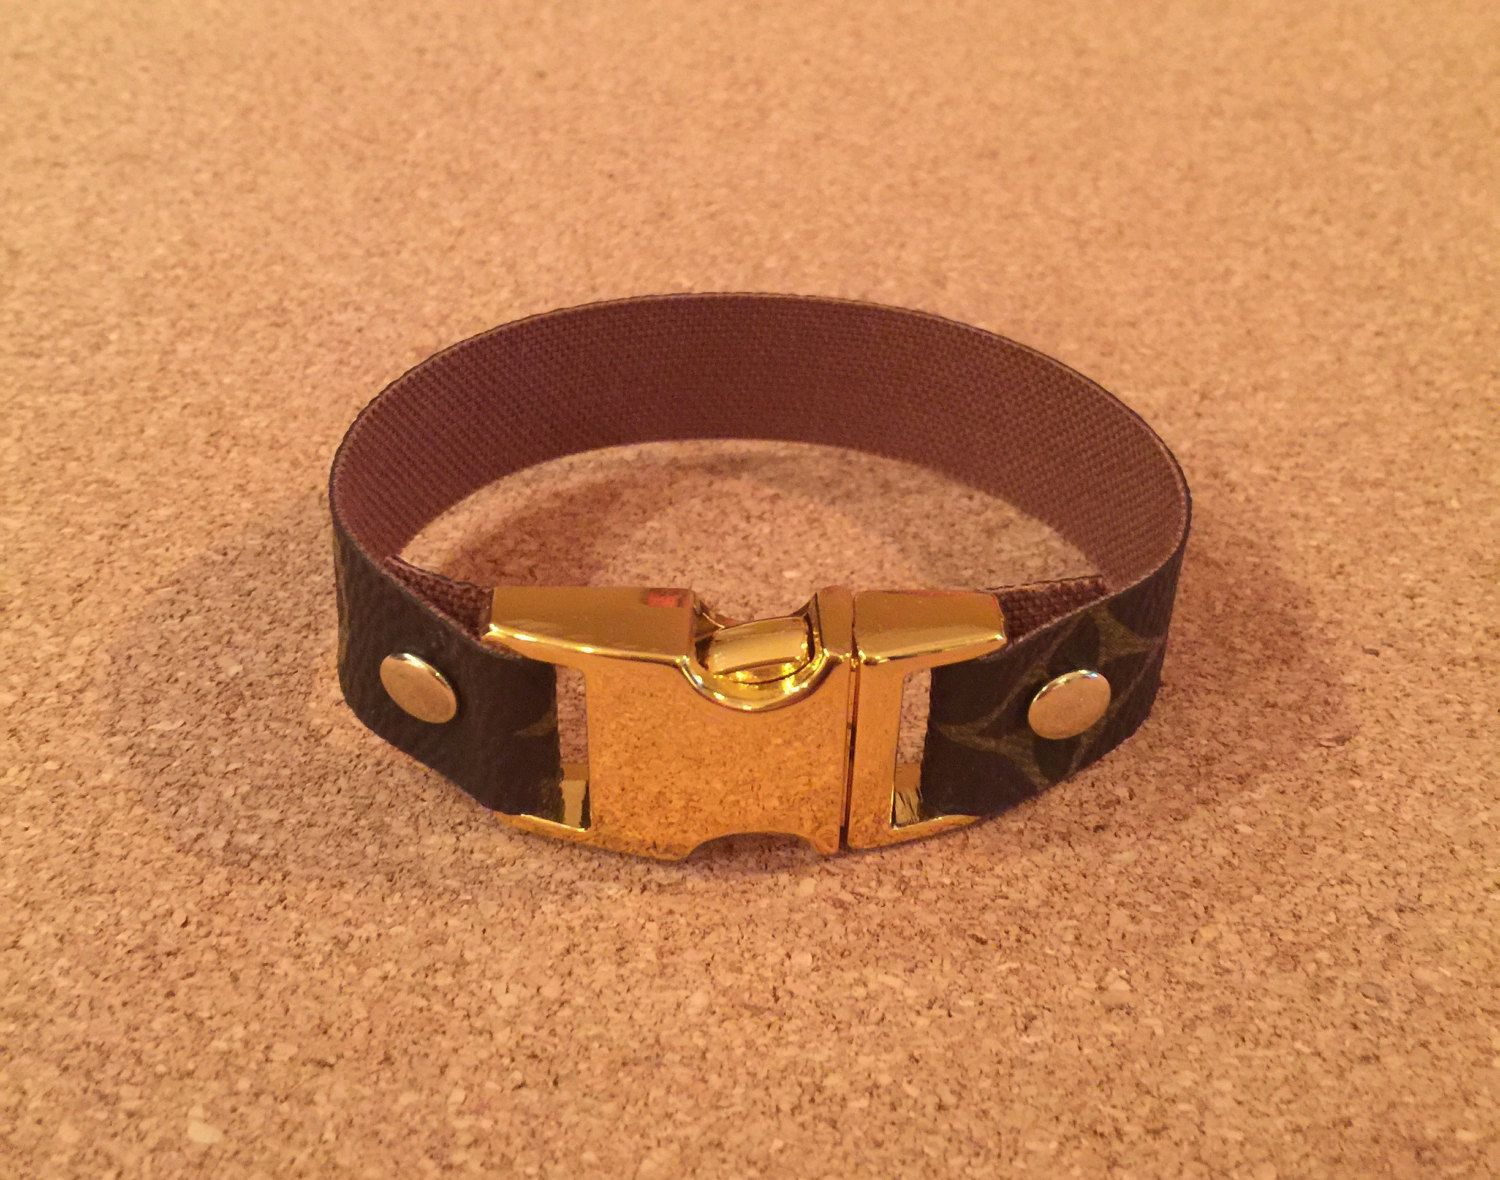 Unisex bracelet upcylced from louis vuitton canvas bracelets